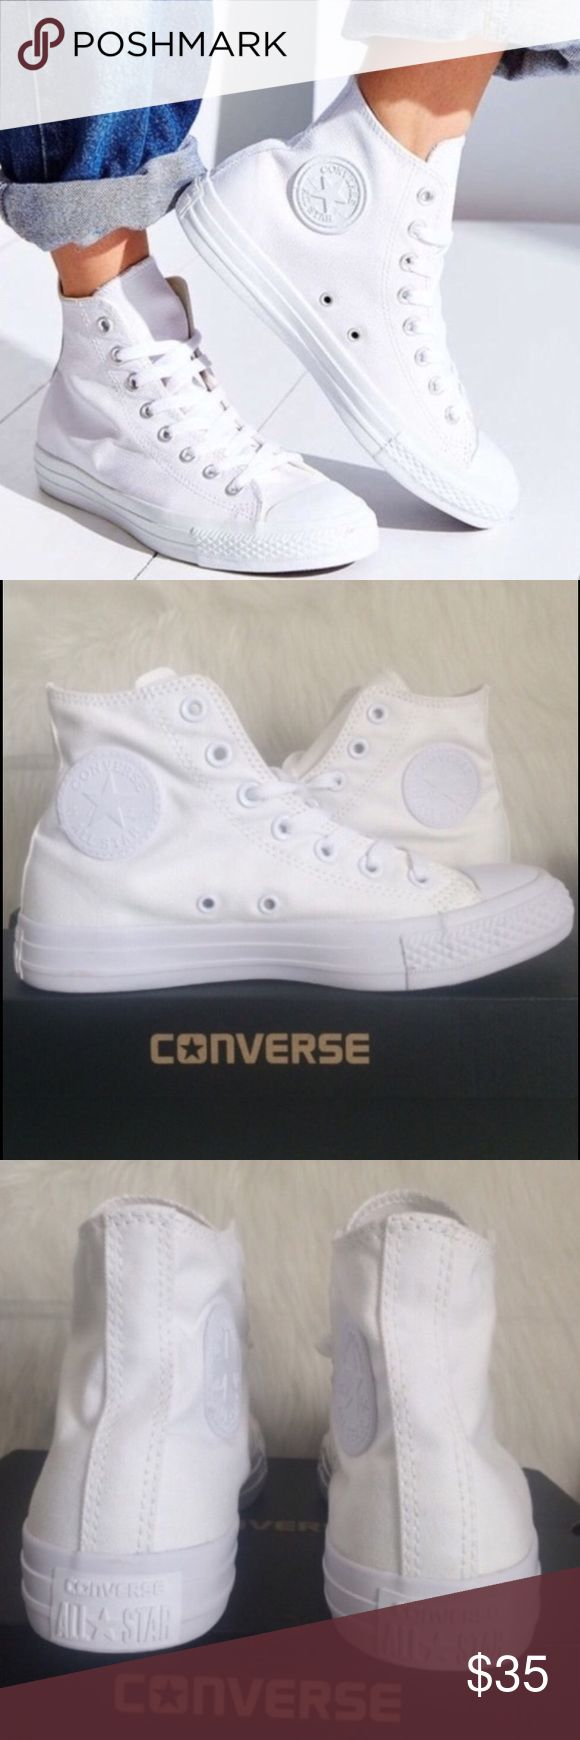 CONVERSE WOMENS SIZE 5 ALL WHITE CHUCK TAYLORS Size 5 WOMENS Converse Shoes Sneakers